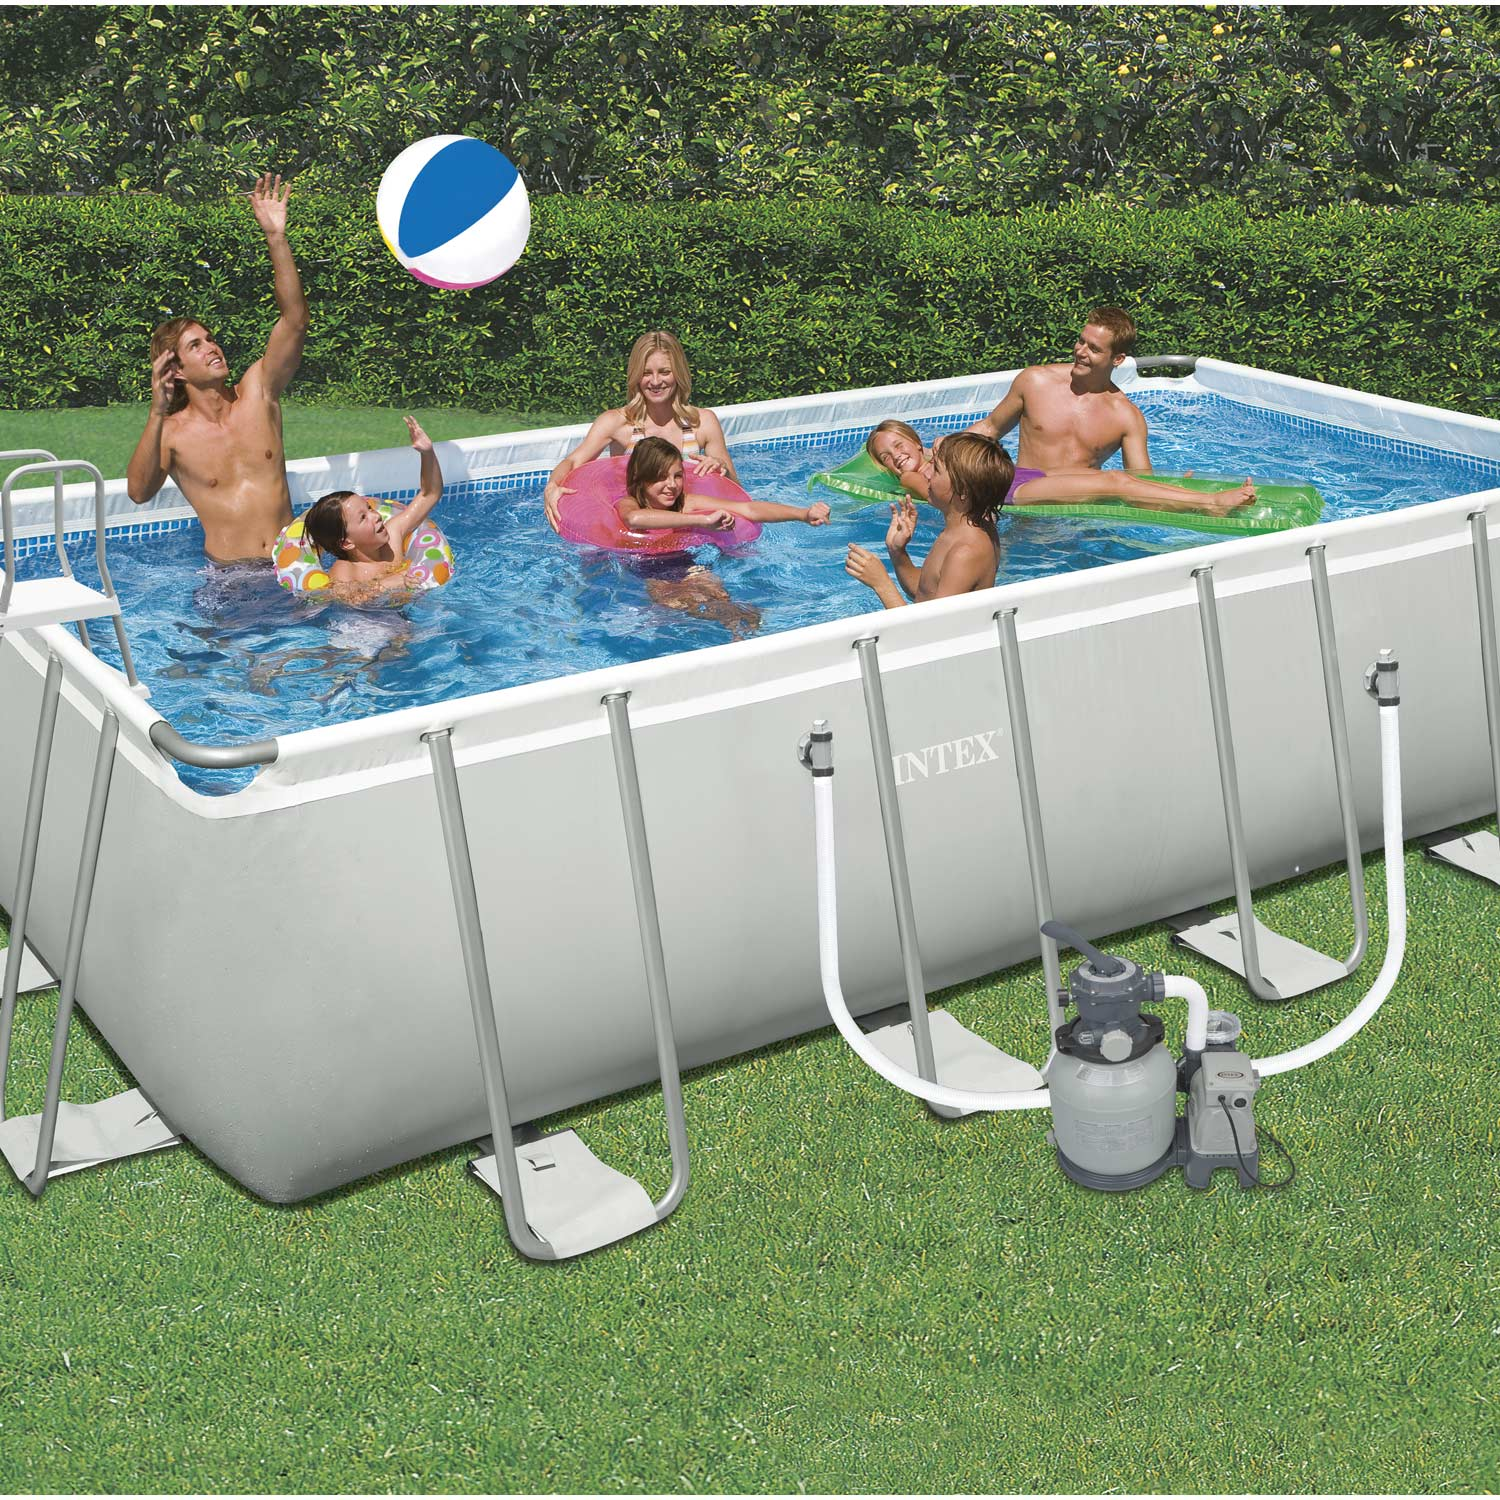 Piscine hors sol autoportante tubulaire intex l x l for Piscine bois a enterrer